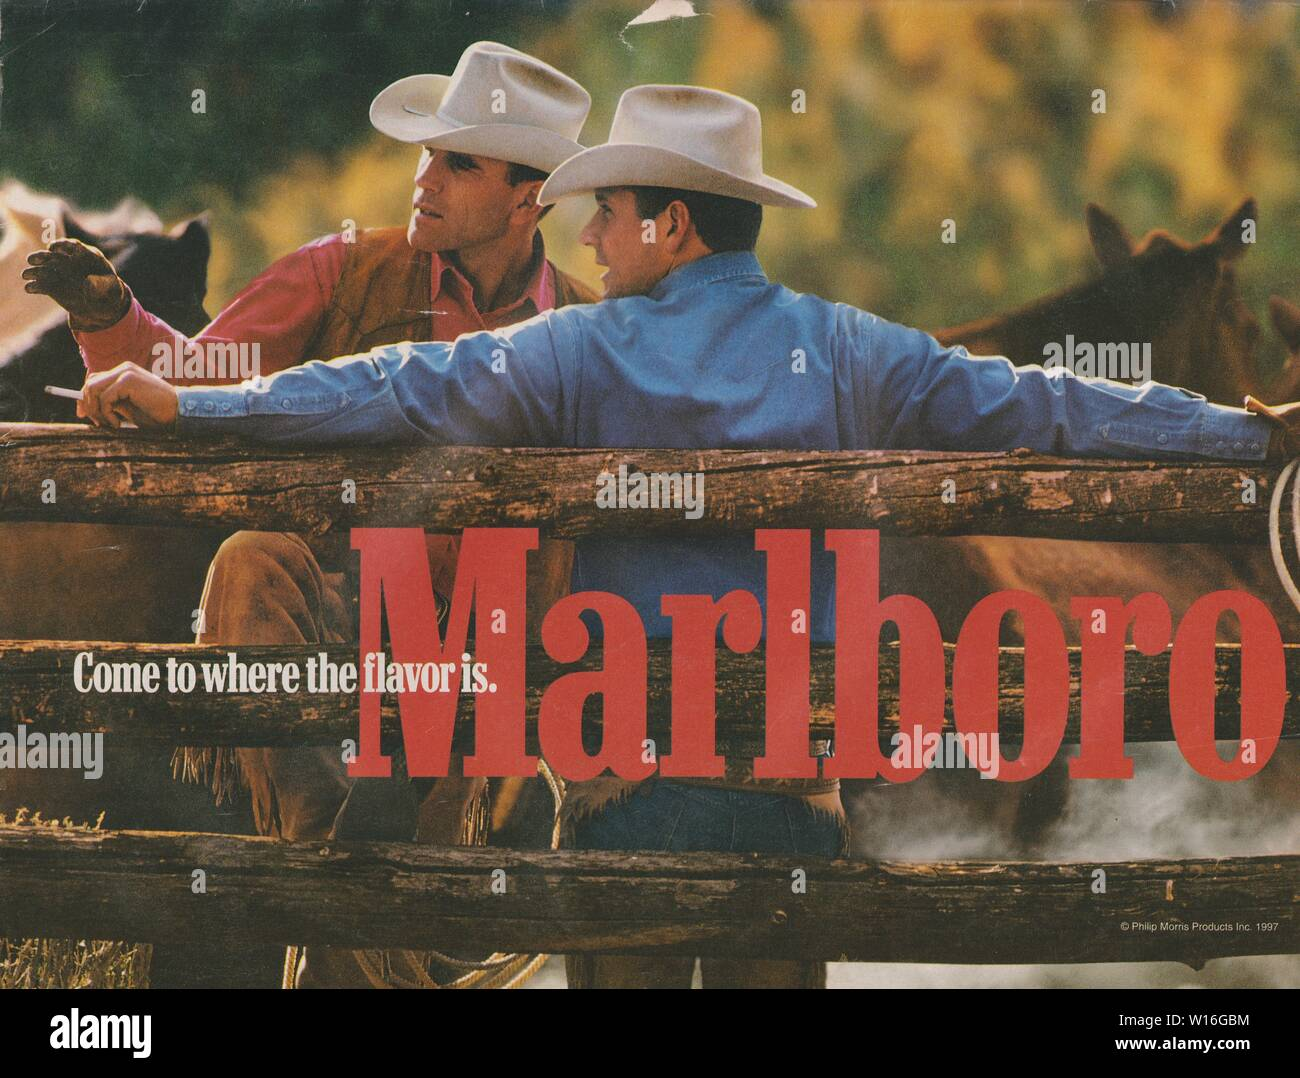 Marlboro Advertisement Stock Photos & Marlboro Advertisement